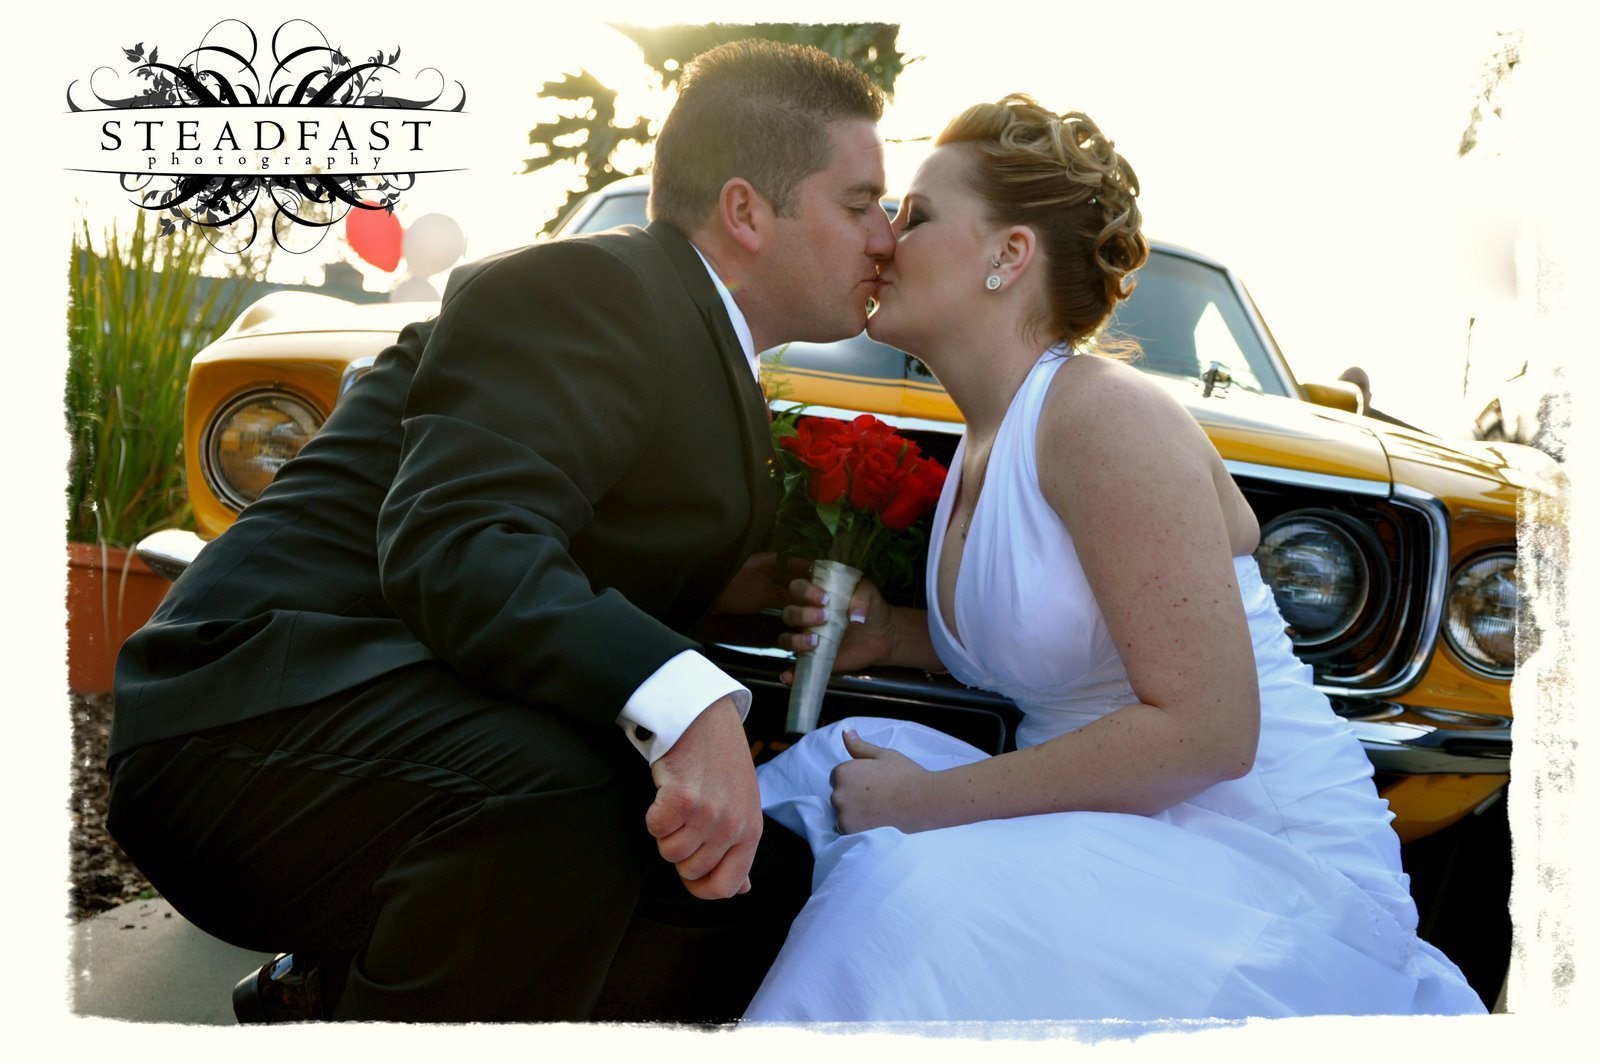 Wedding Dresses, Vintage Wedding Dresses, Fashion, red, dress, Vintage, Roses, Wedding, Car, Intertwined weddings events